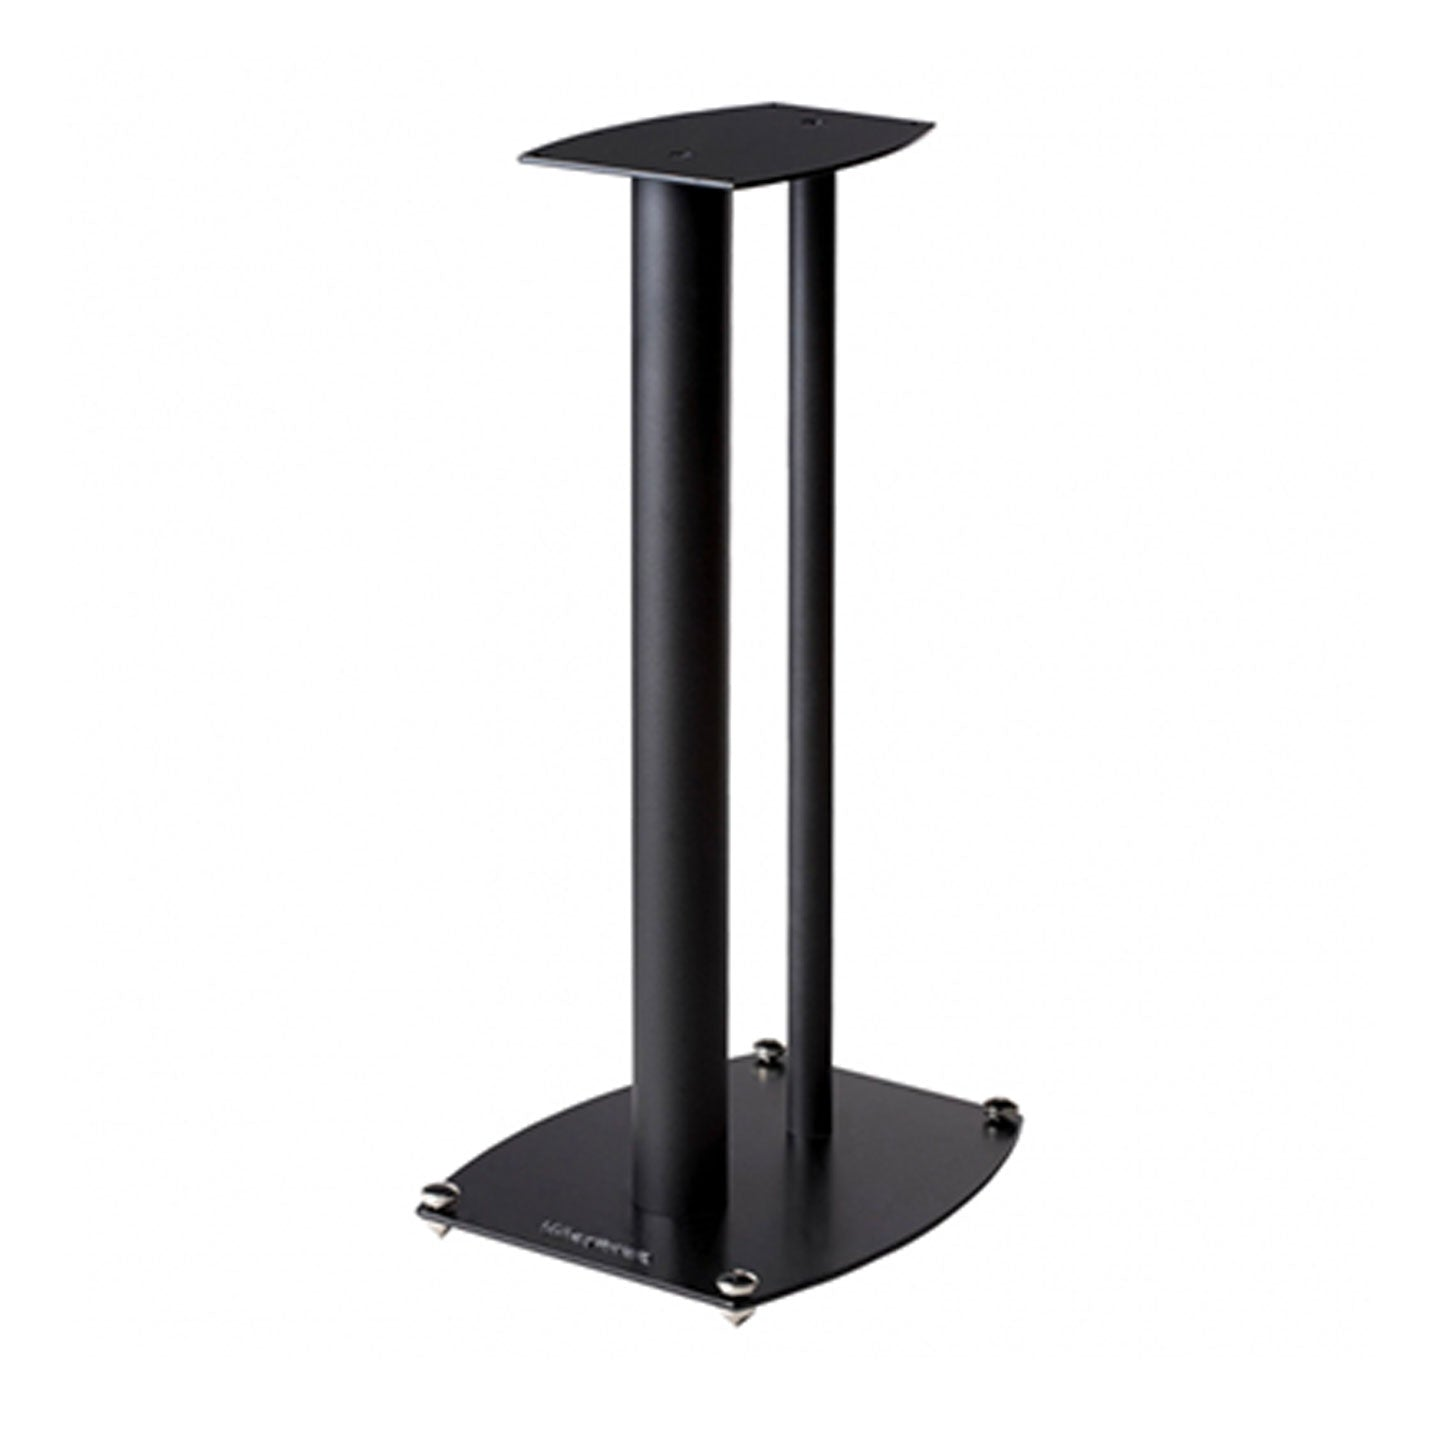 WHARFEDALE ST-1 SPEAKER STANDS